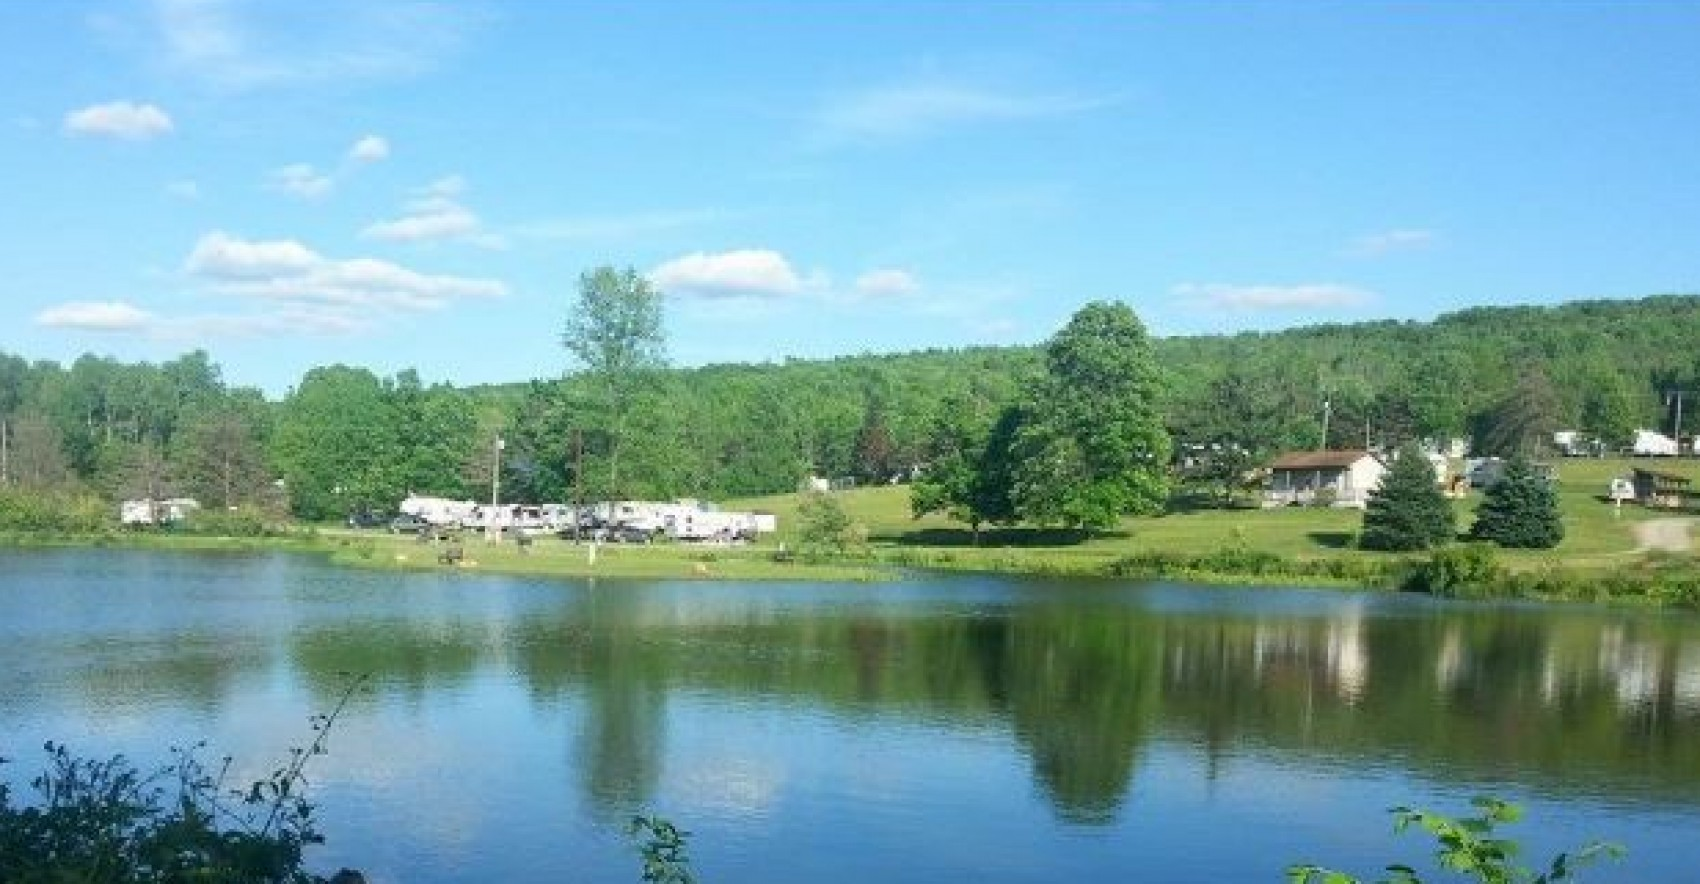 Finger Lakes Campground from across the pond